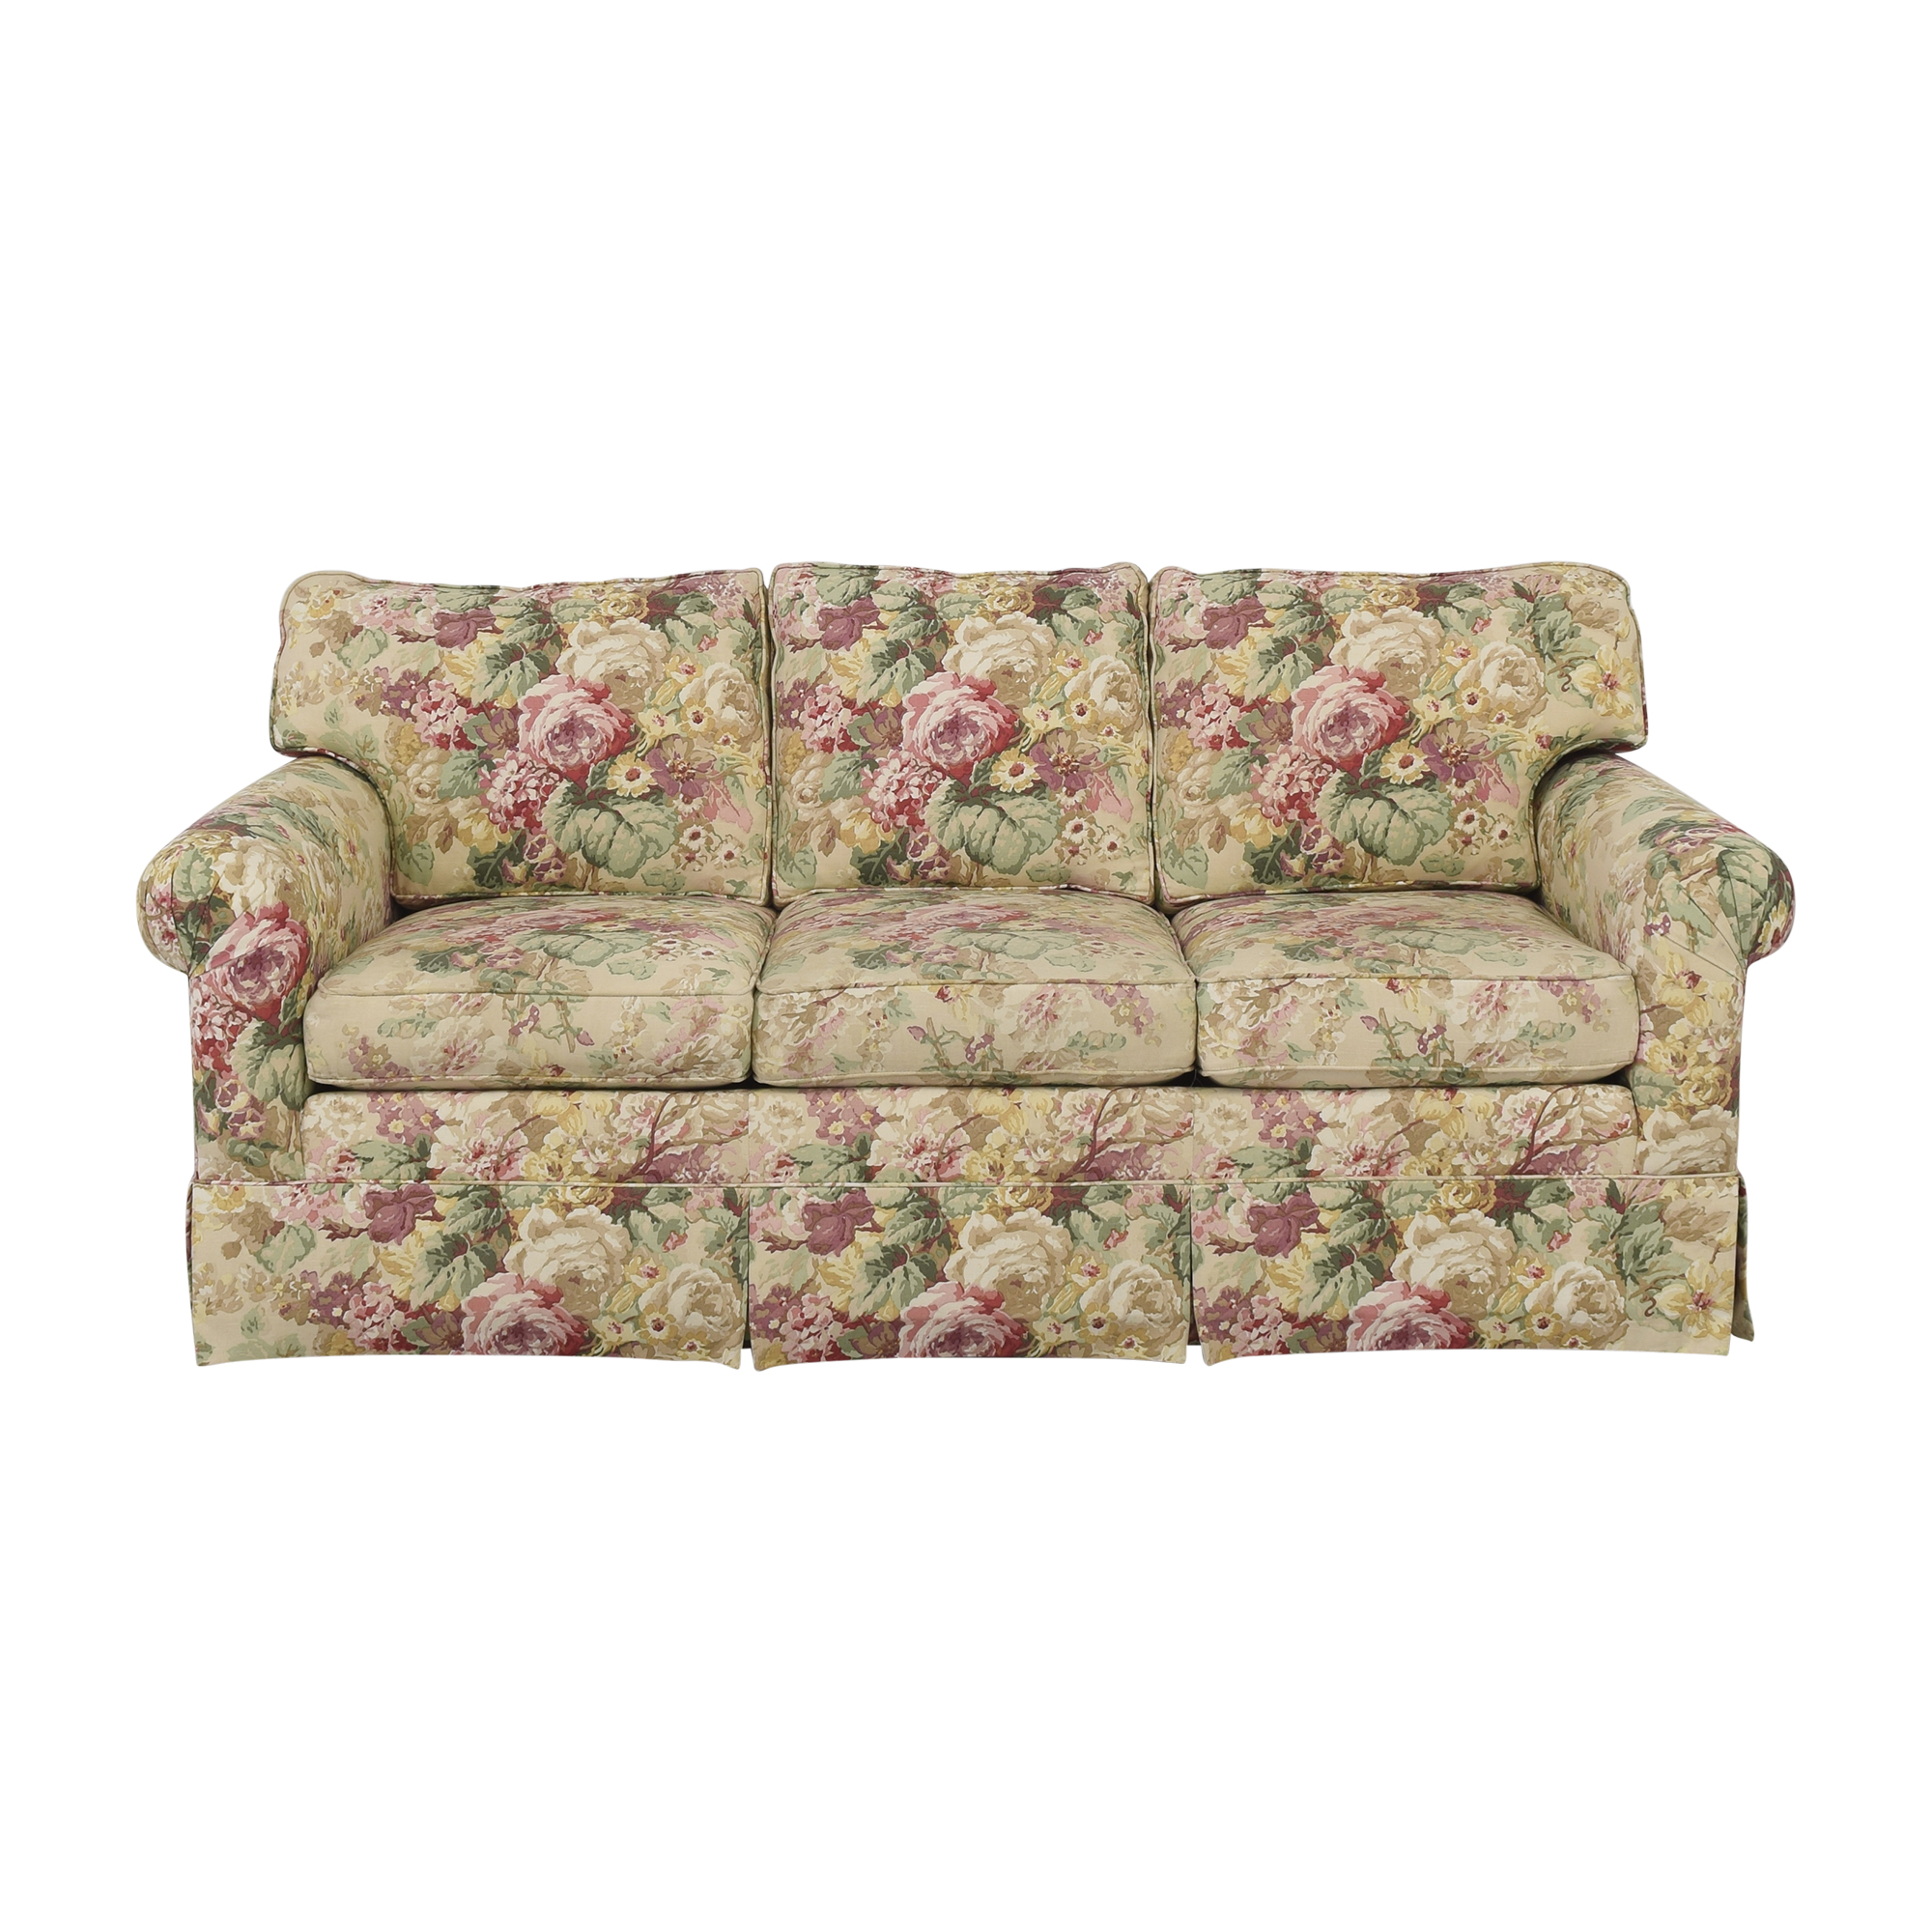 Ethan Allen Ethan Allen Floral Three Cushion Sofa multi